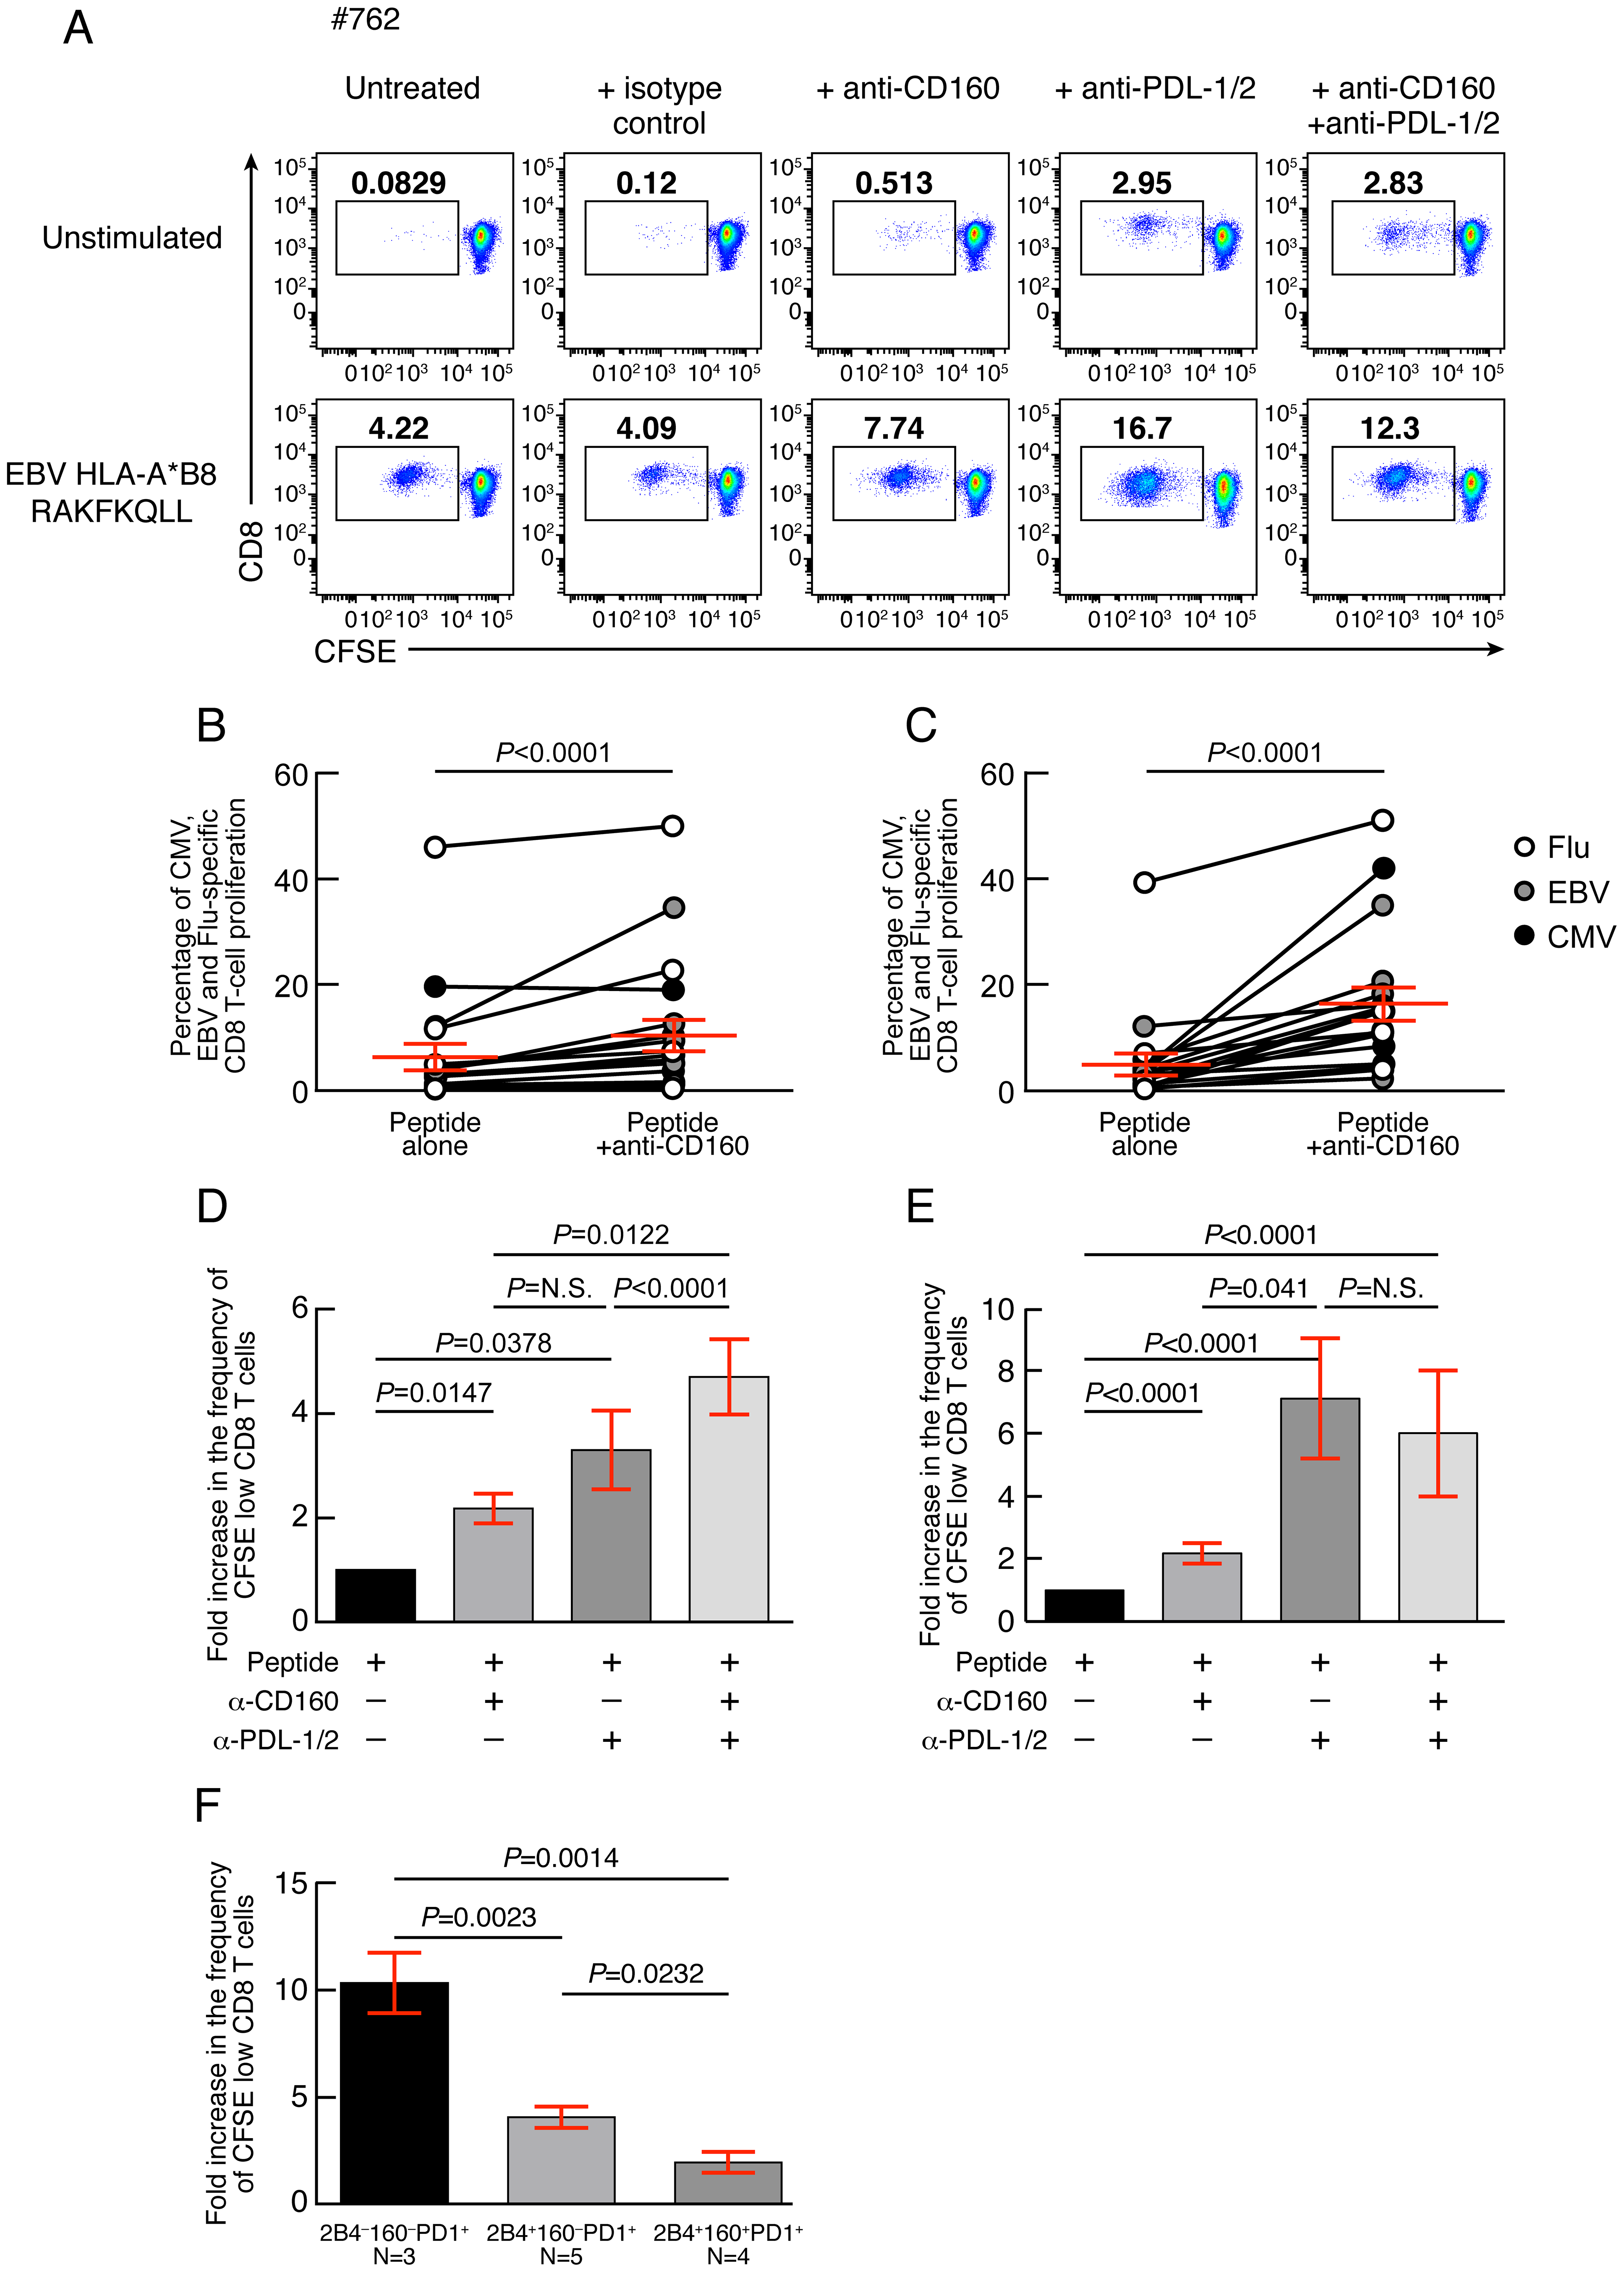 CD160 blockade significantly increases virus-specific CD8 T-cell proliferation.